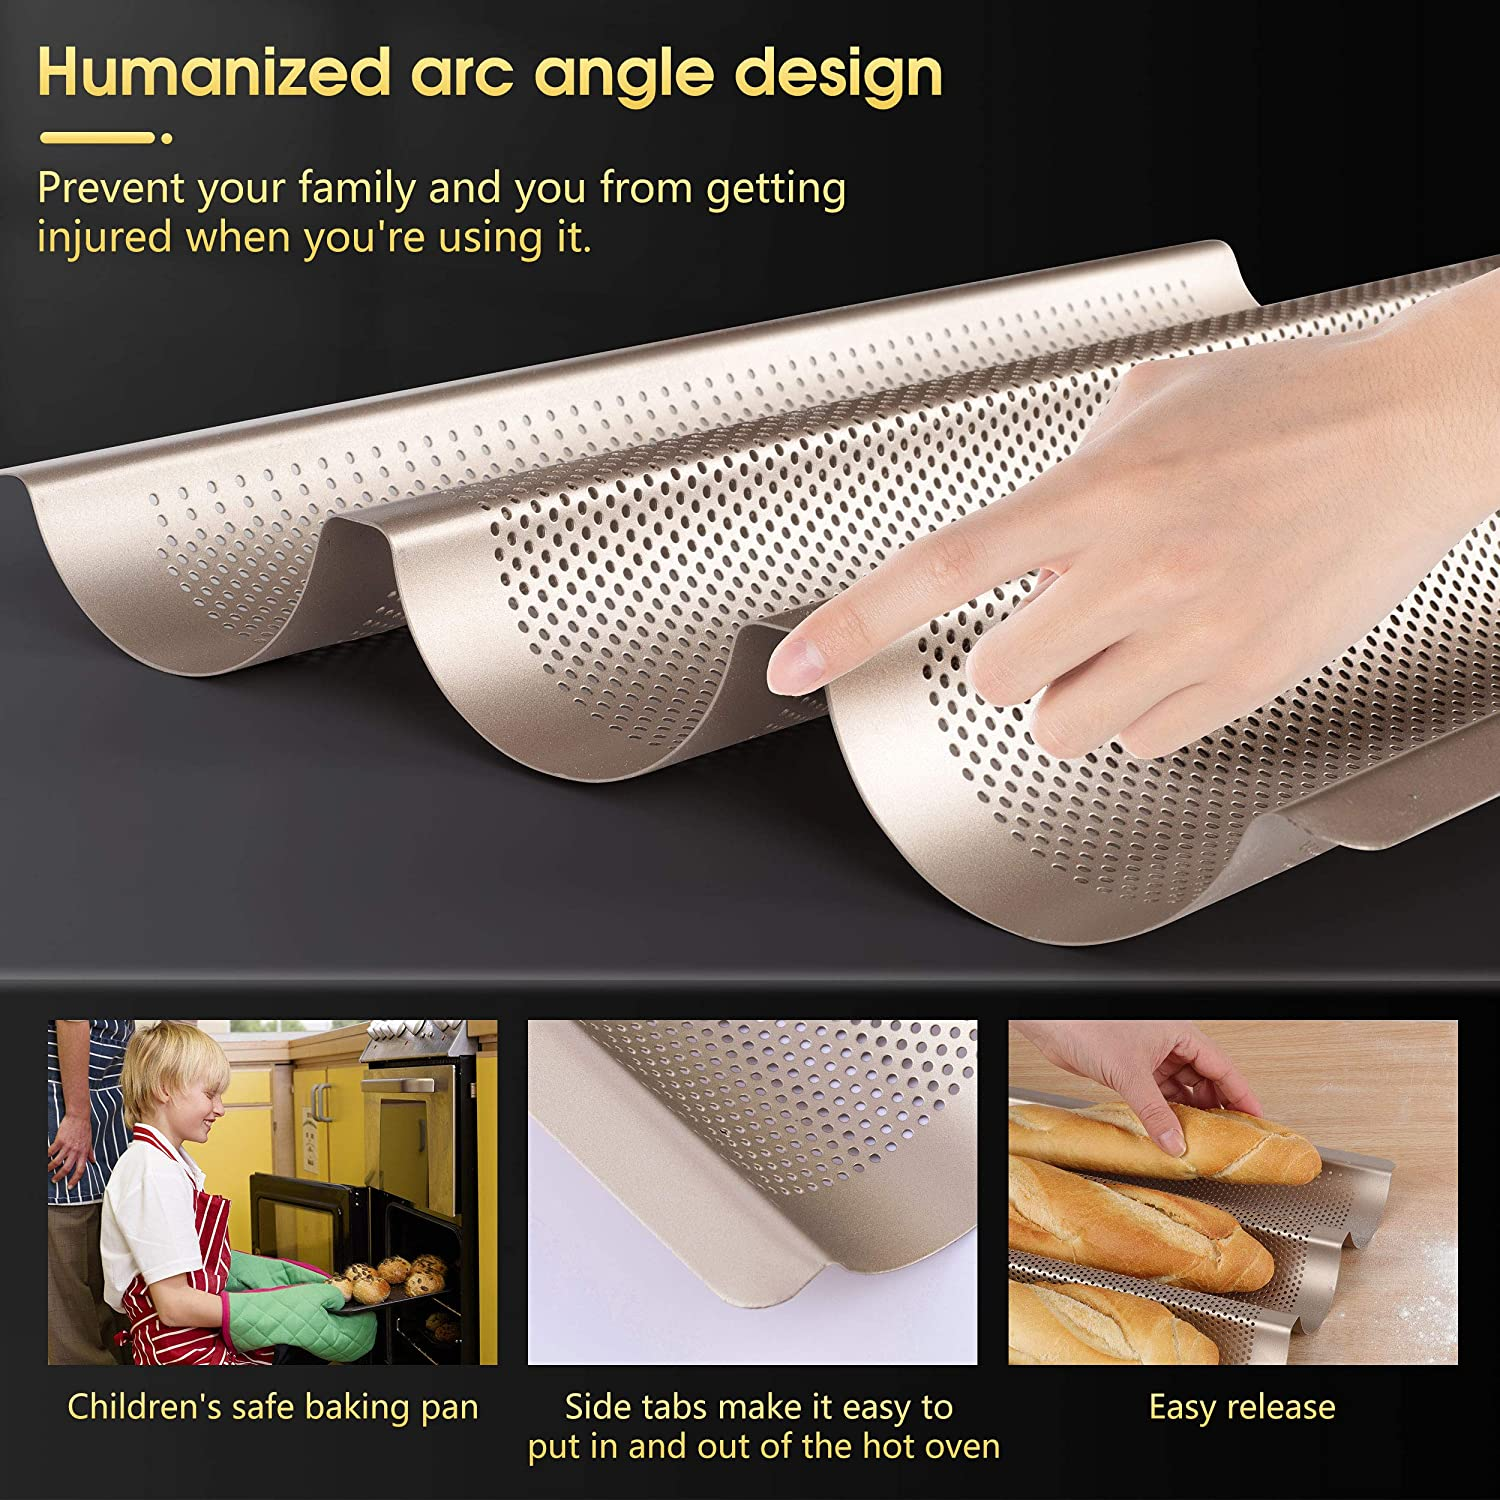 15x11 Perforated French Bread /& Baguette Pans for Baking Pastry Proofing Cloth /& Dough Scraper 3 Loaf Smooth Arc Angle Italian Bread Pan Baking Tray Bake Mold Toast MYEonz Nonstick Baguette Pan